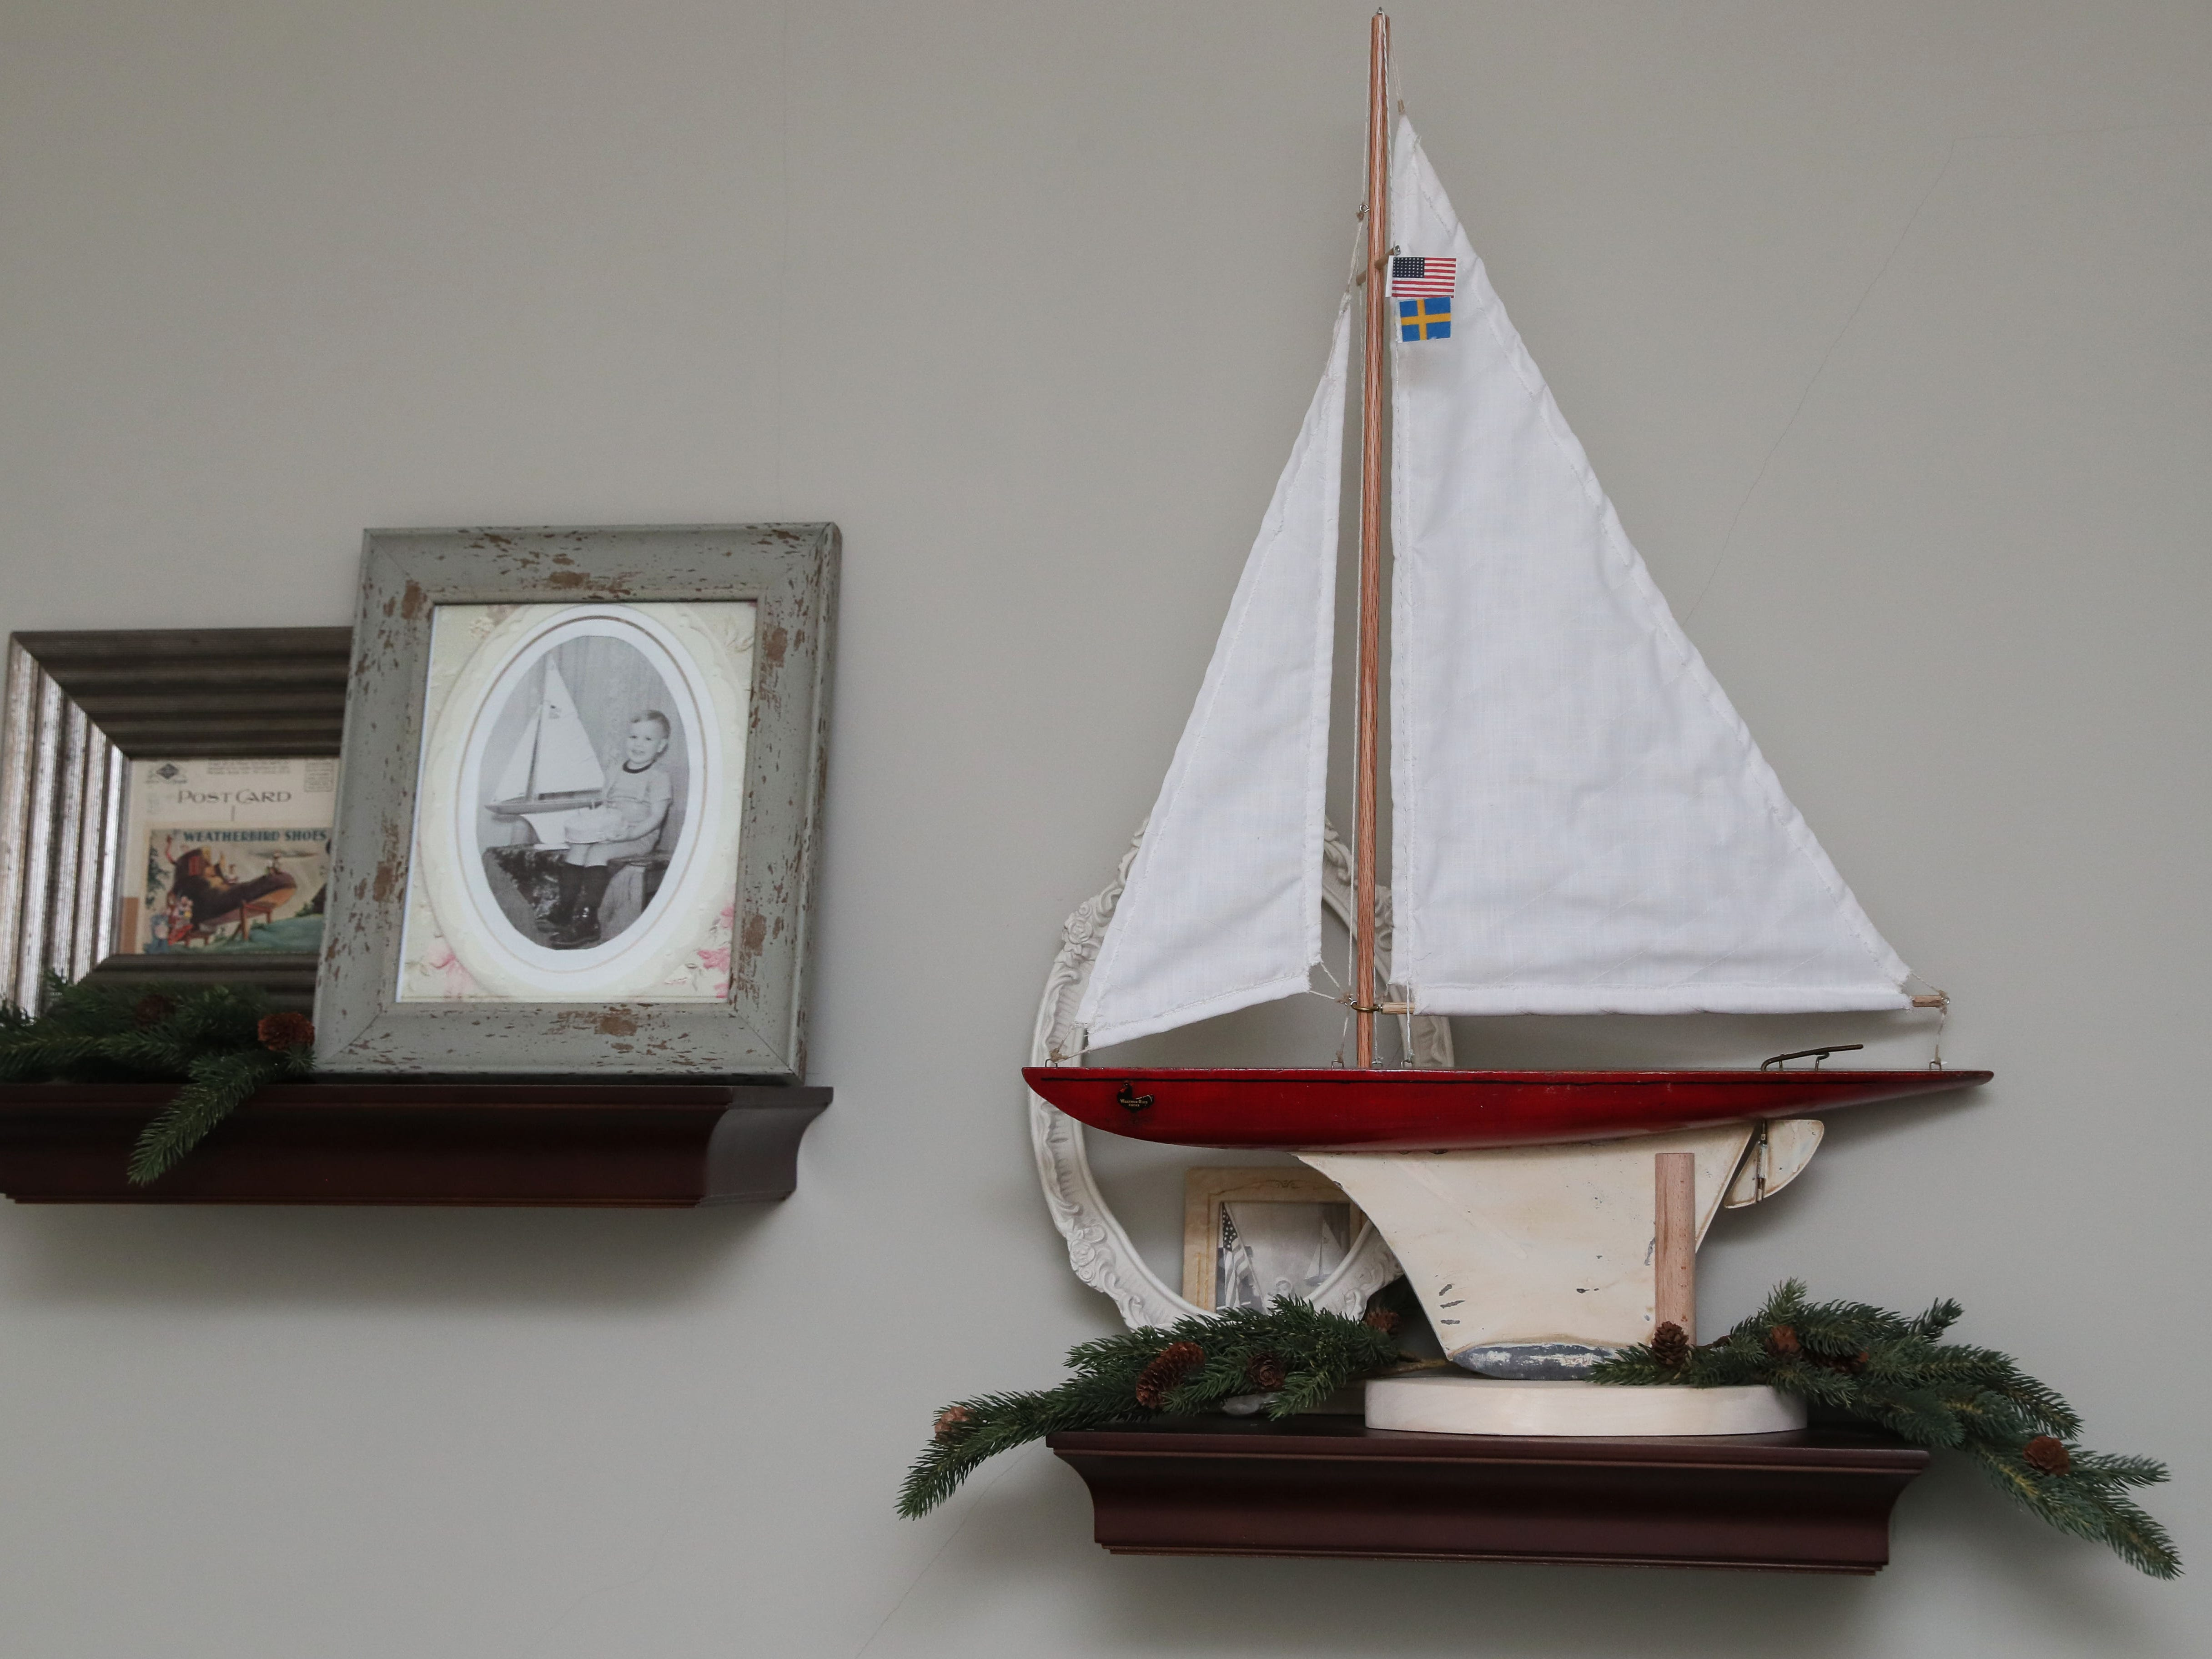 One of Zoe Krause's favorite pieces is this model sailboat made by her father  when he was 3 years old, next to a photo of him at that age holding it. These are on display in a guest bedroom.